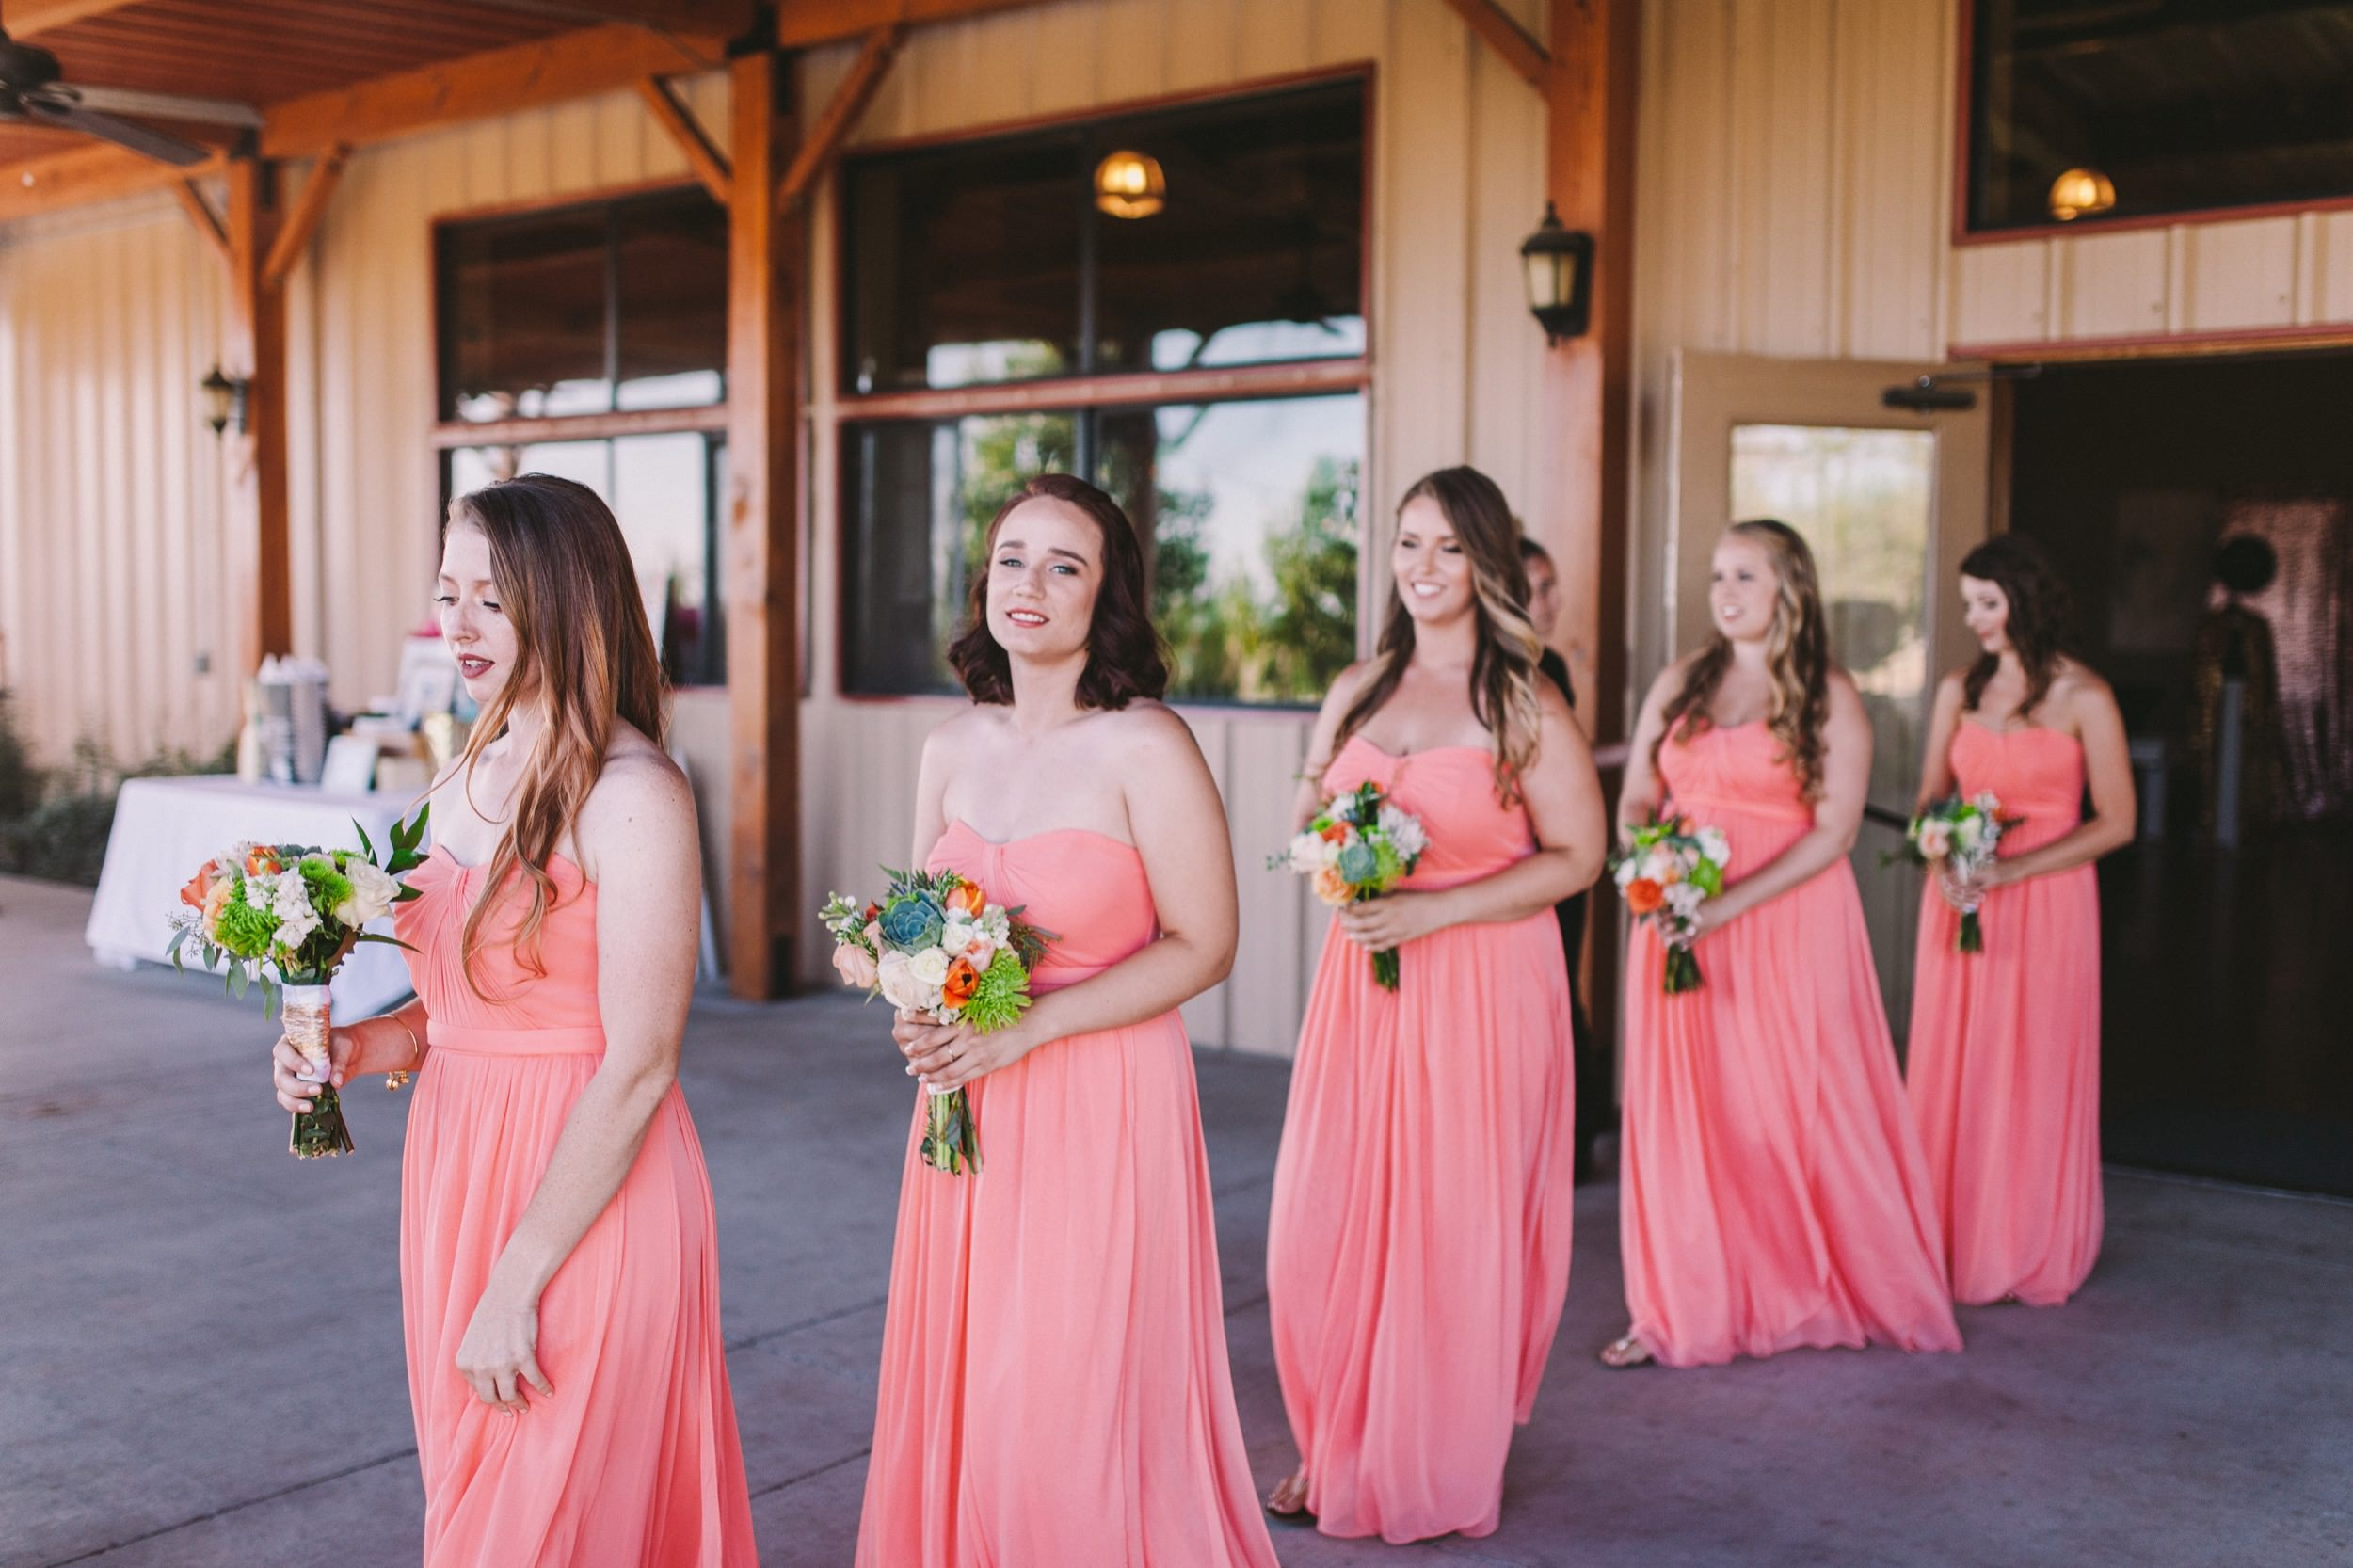 Pink & Orange Themed Wedding Bridesmaid Outfits